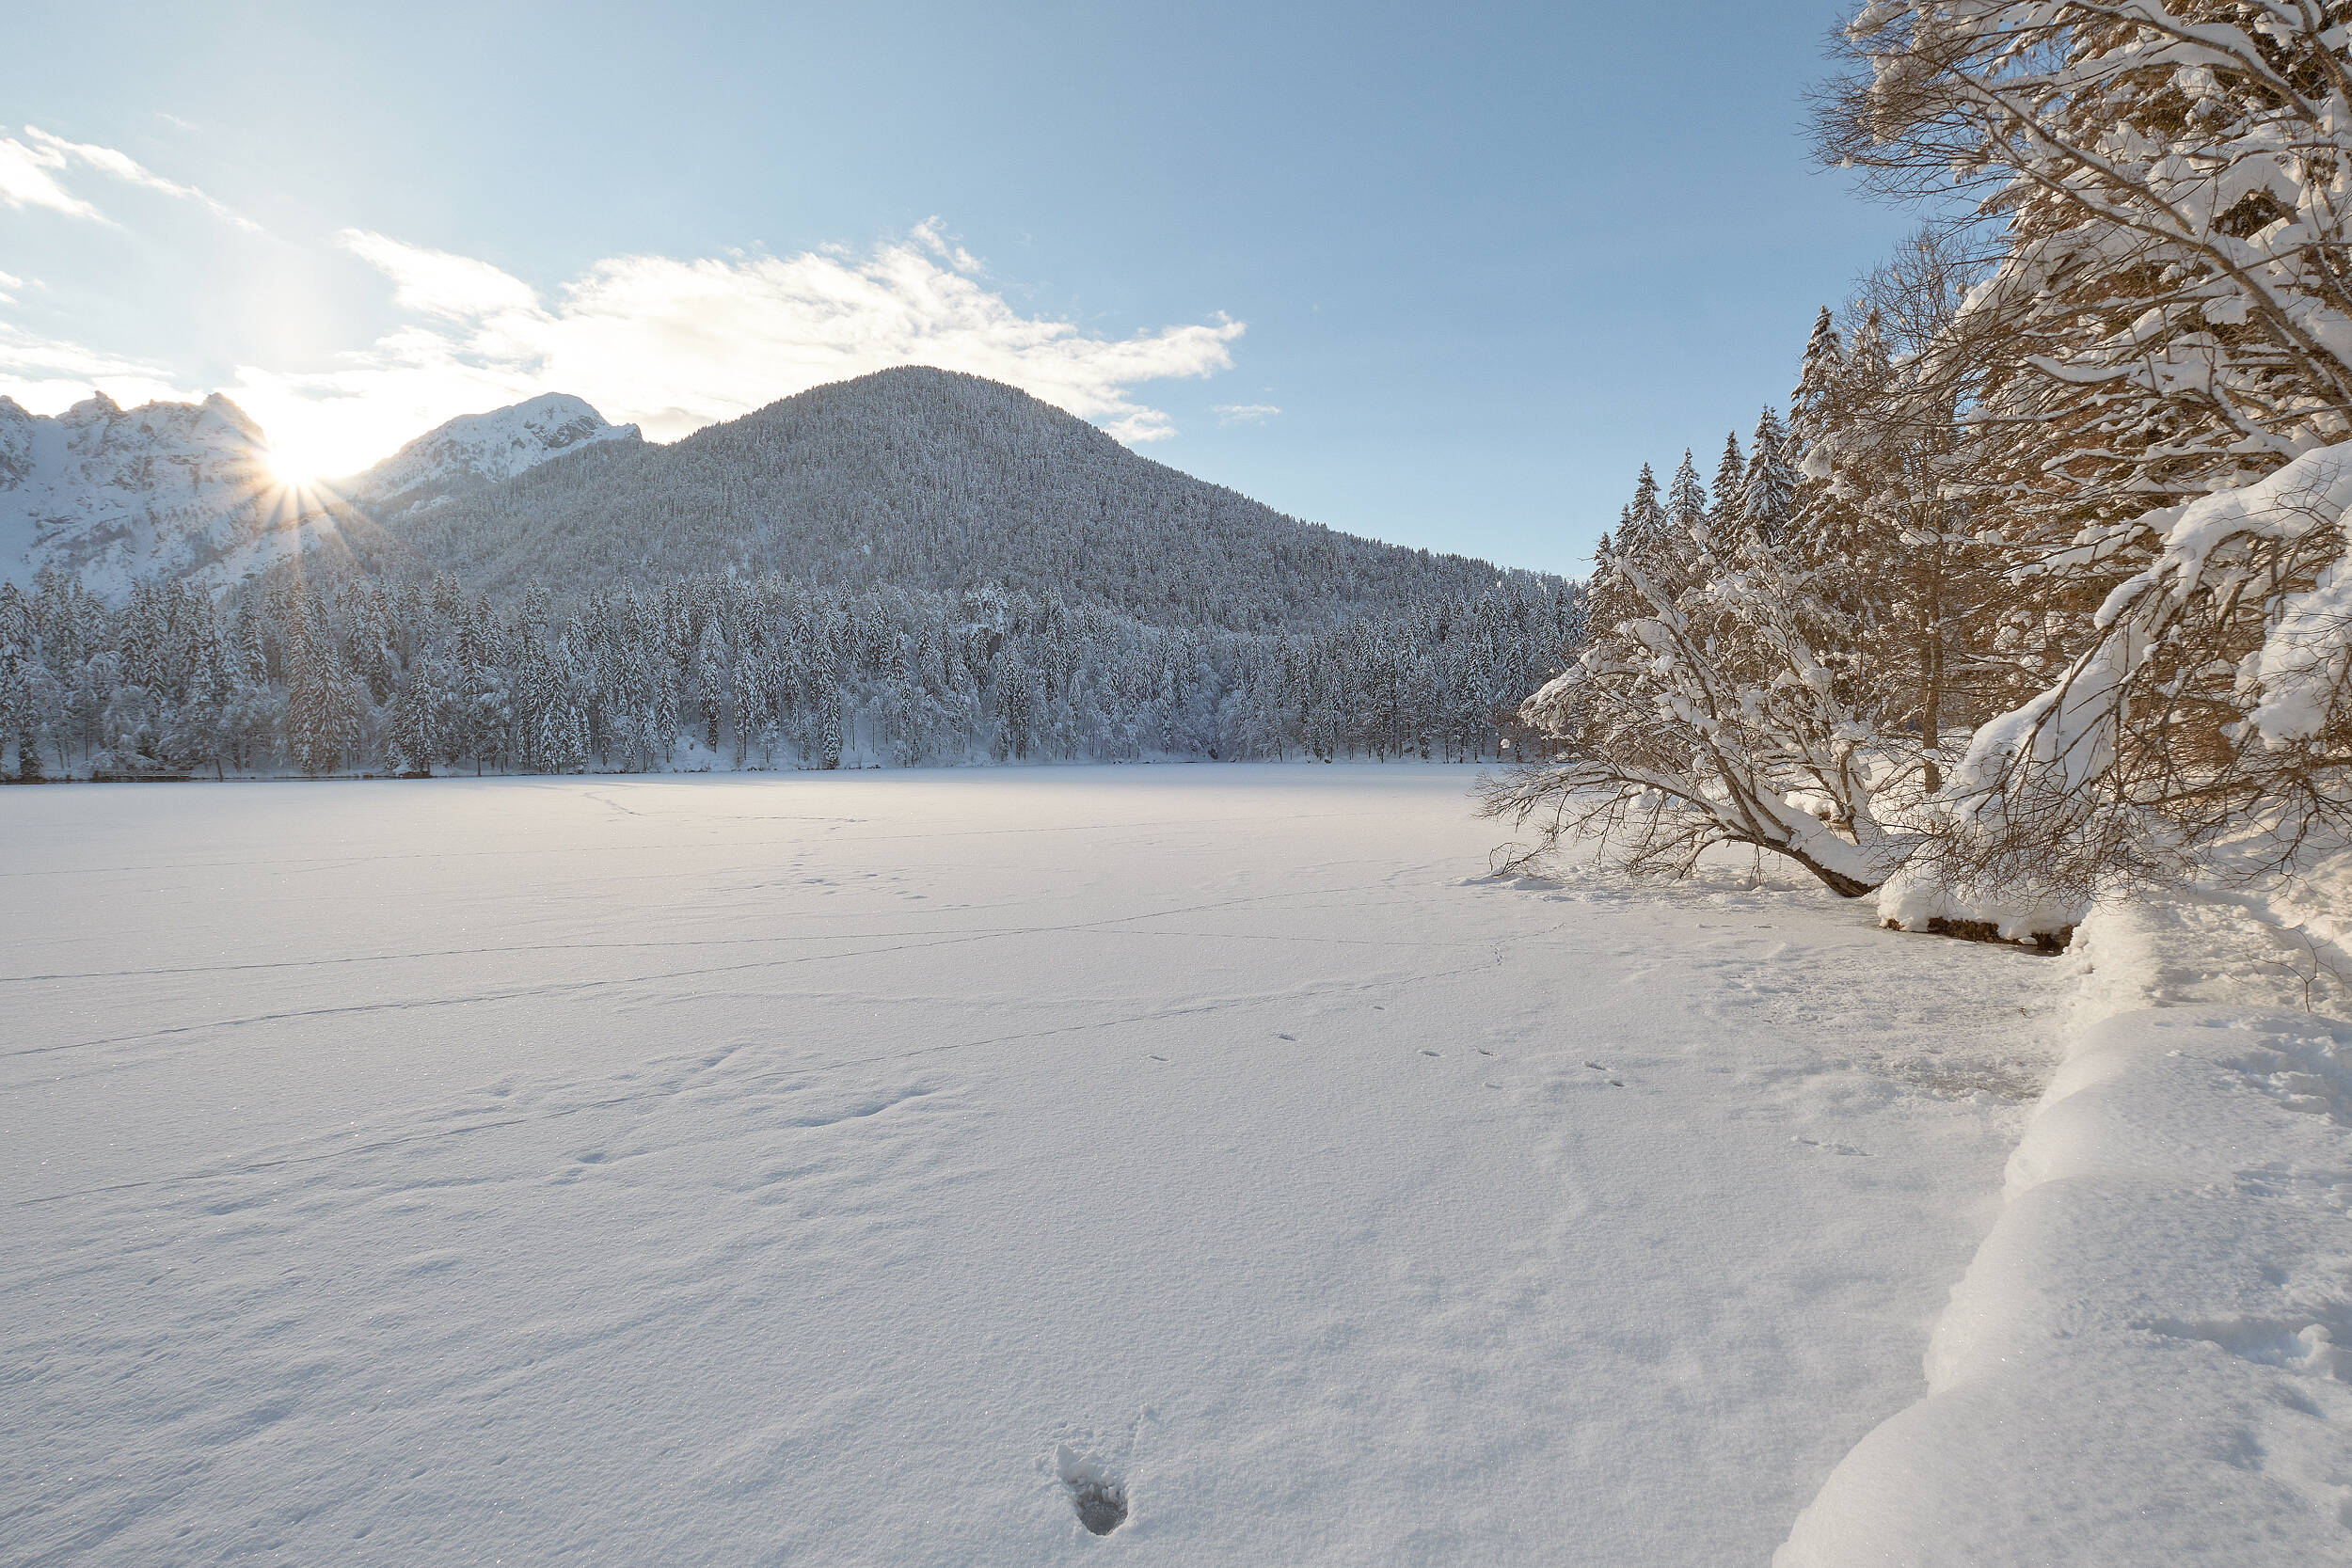 8/1/21 at Lake Fusine, Italy: one of the most beautiful and relaxing day I had since the beginning of this new year.